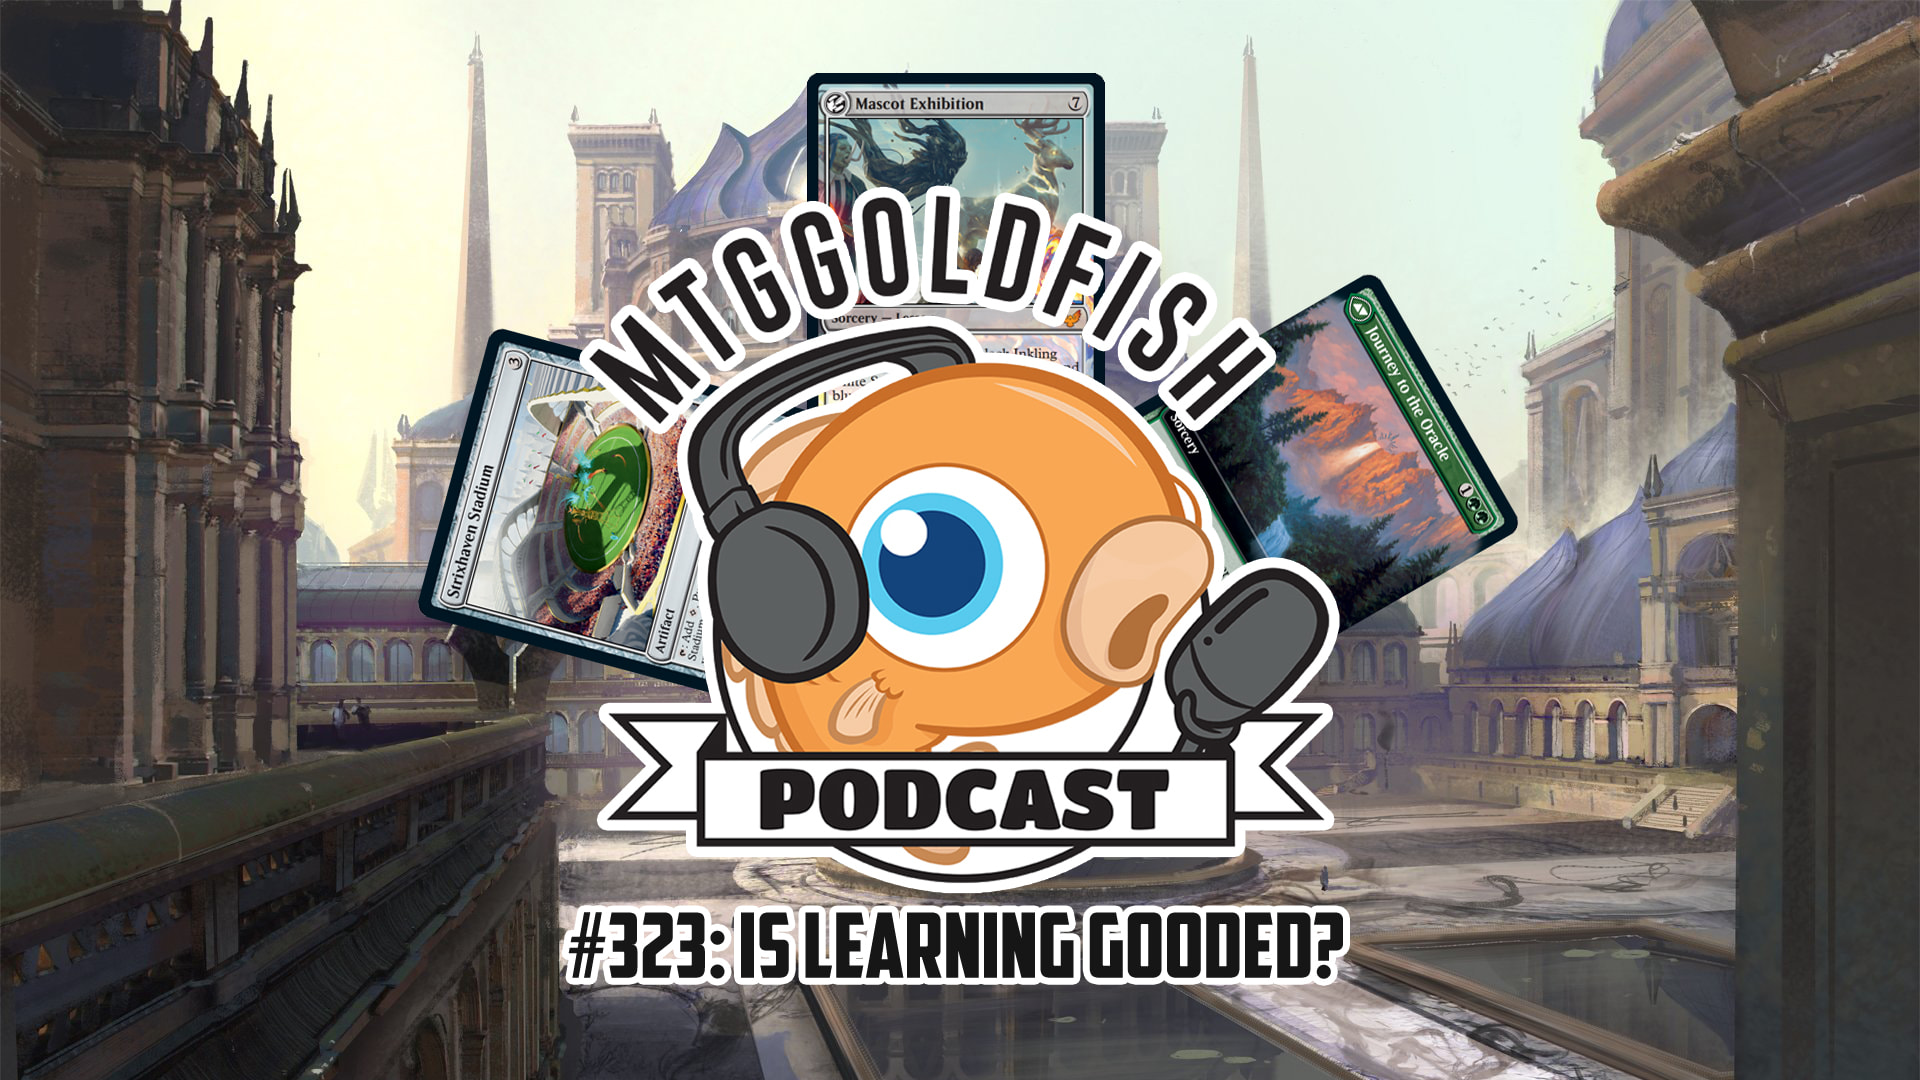 Image for Podcast 323: Is Learning Gooded?